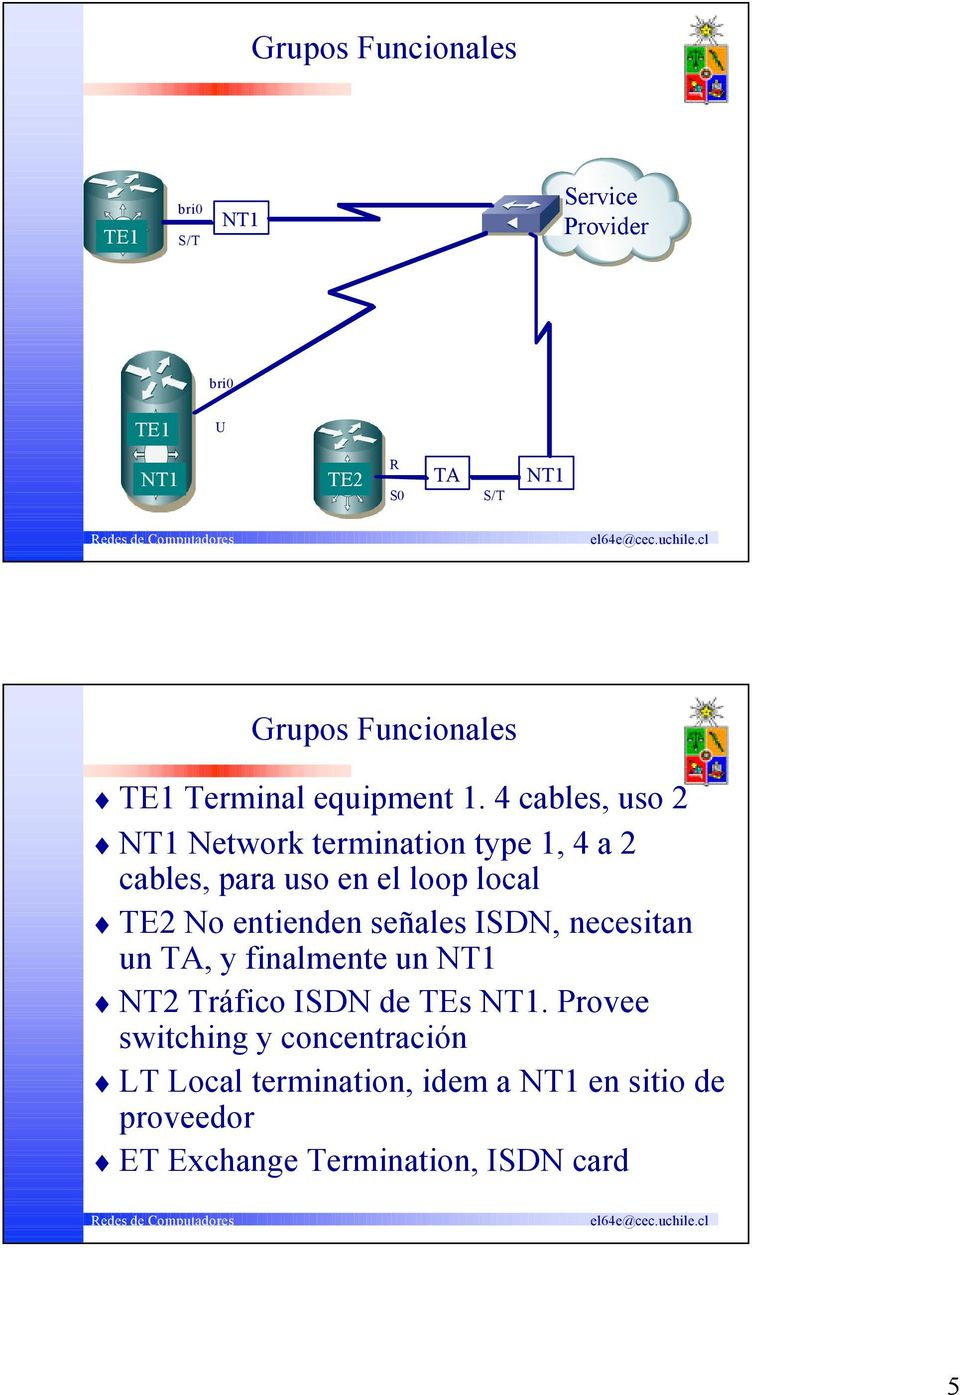 4 cables, uso 2 NT1 Network termination type 1, 4 a 2 cables, para uso en el loop local TE2 No entienden